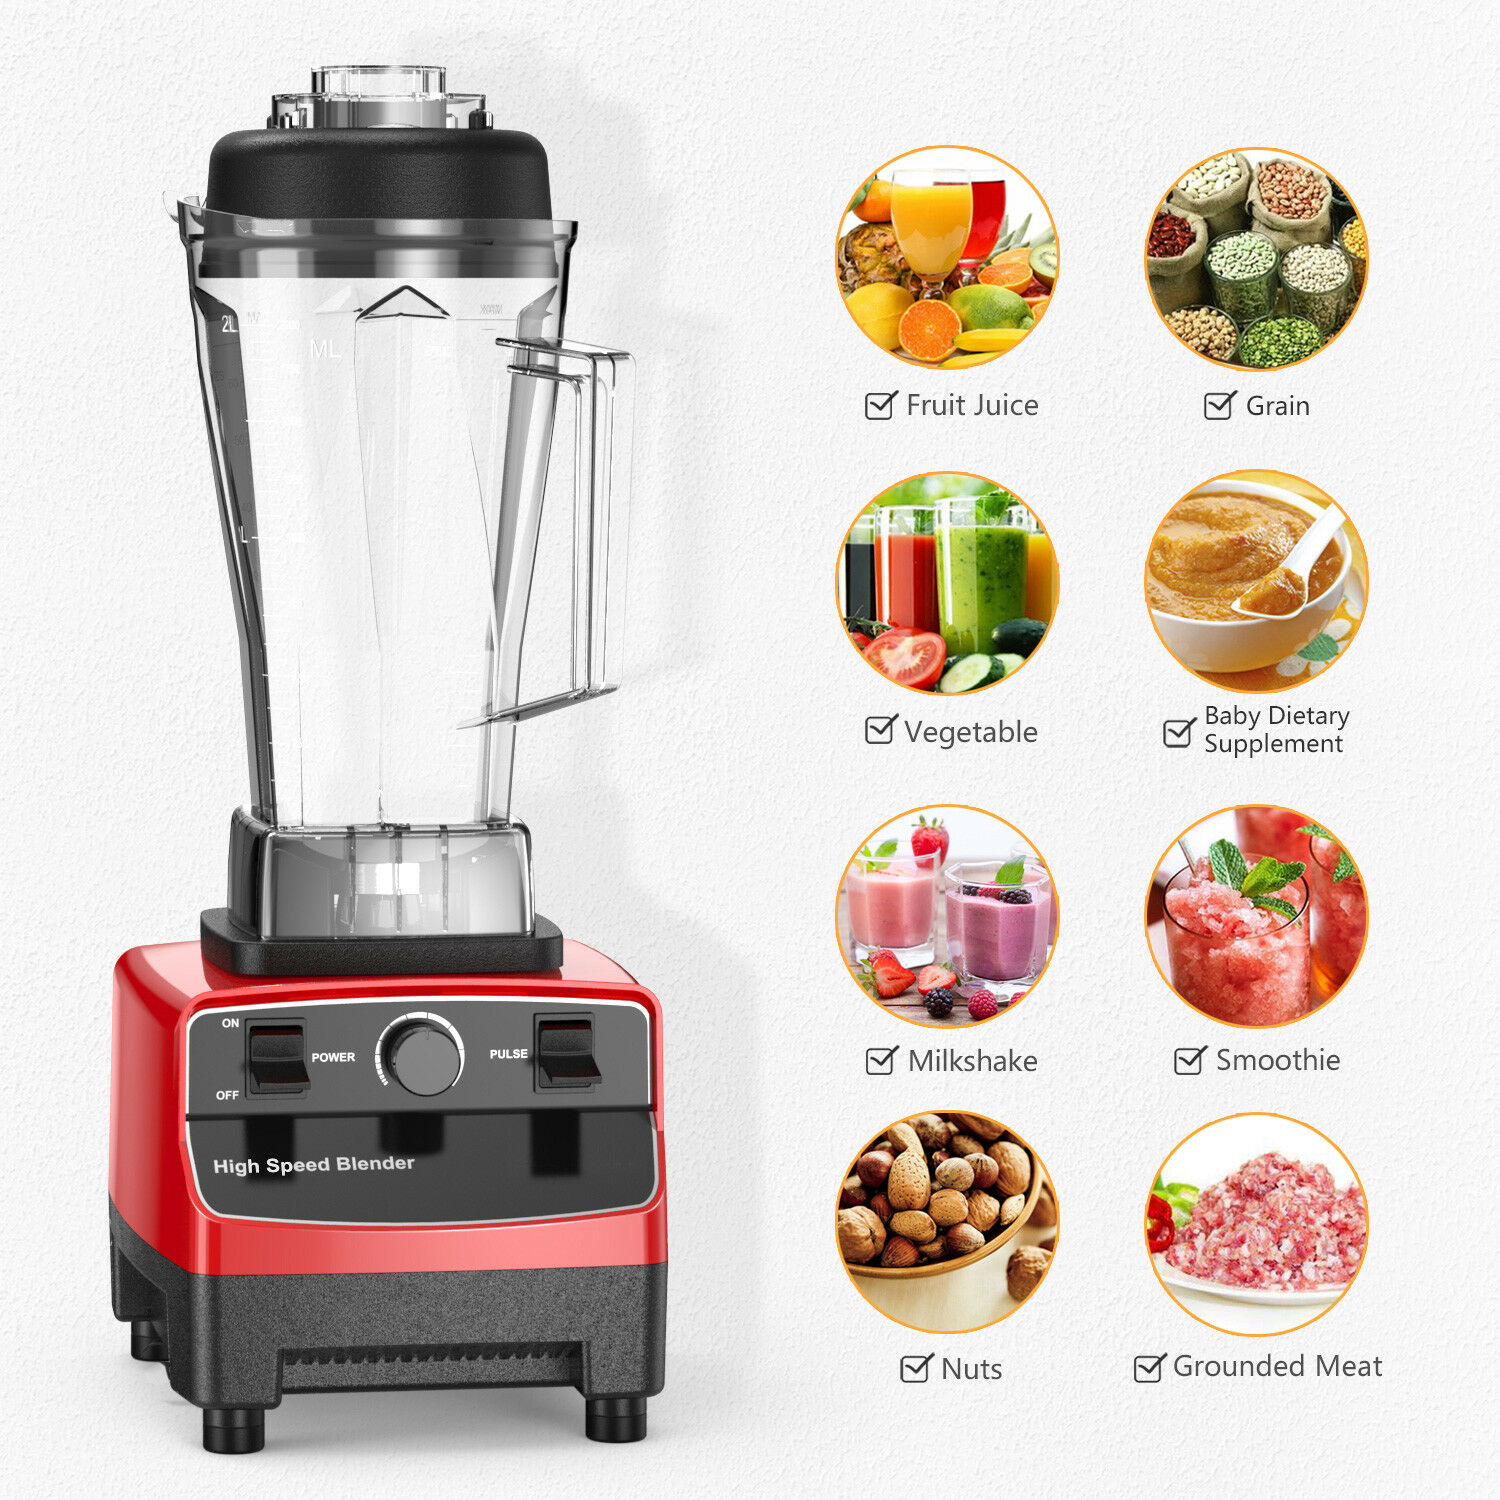 High Speed Blender 28000RPM Smoothie Dessert Ice Crushing Juicer Food Processer